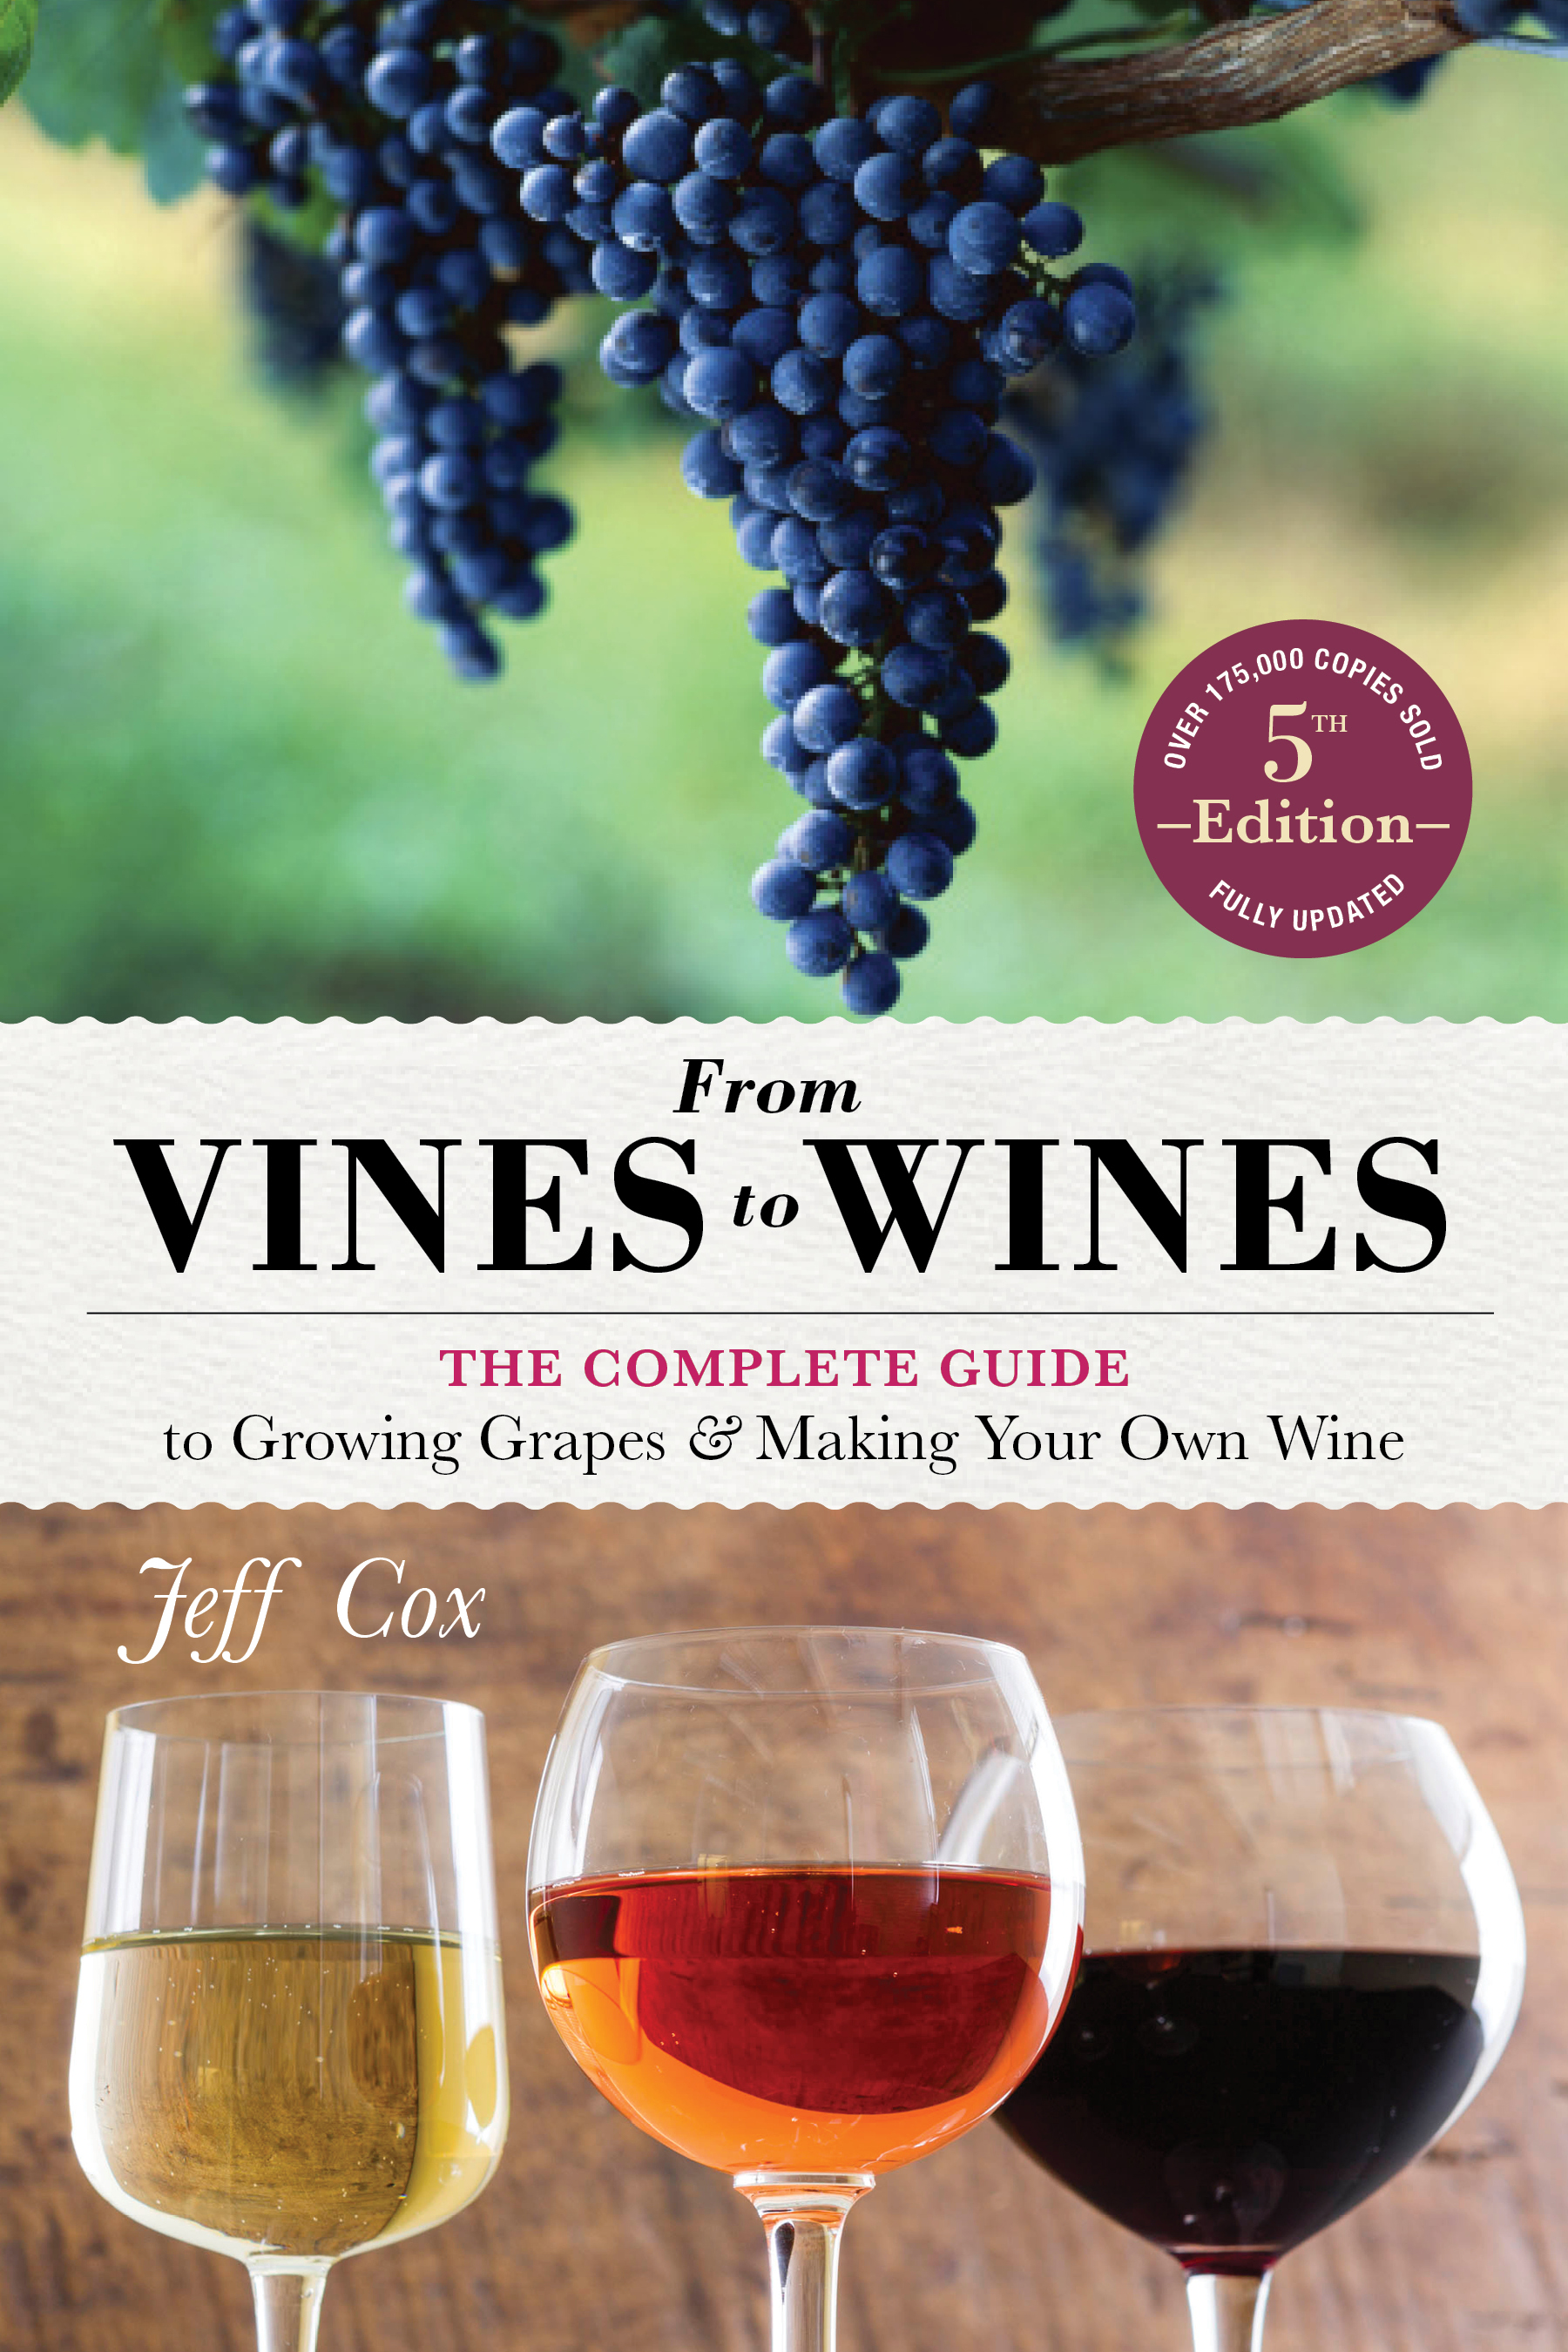 From Vines to Wines, 5th Edition The Complete Guide to Growing Grapes and Making Your Own Wine - Jeff Cox